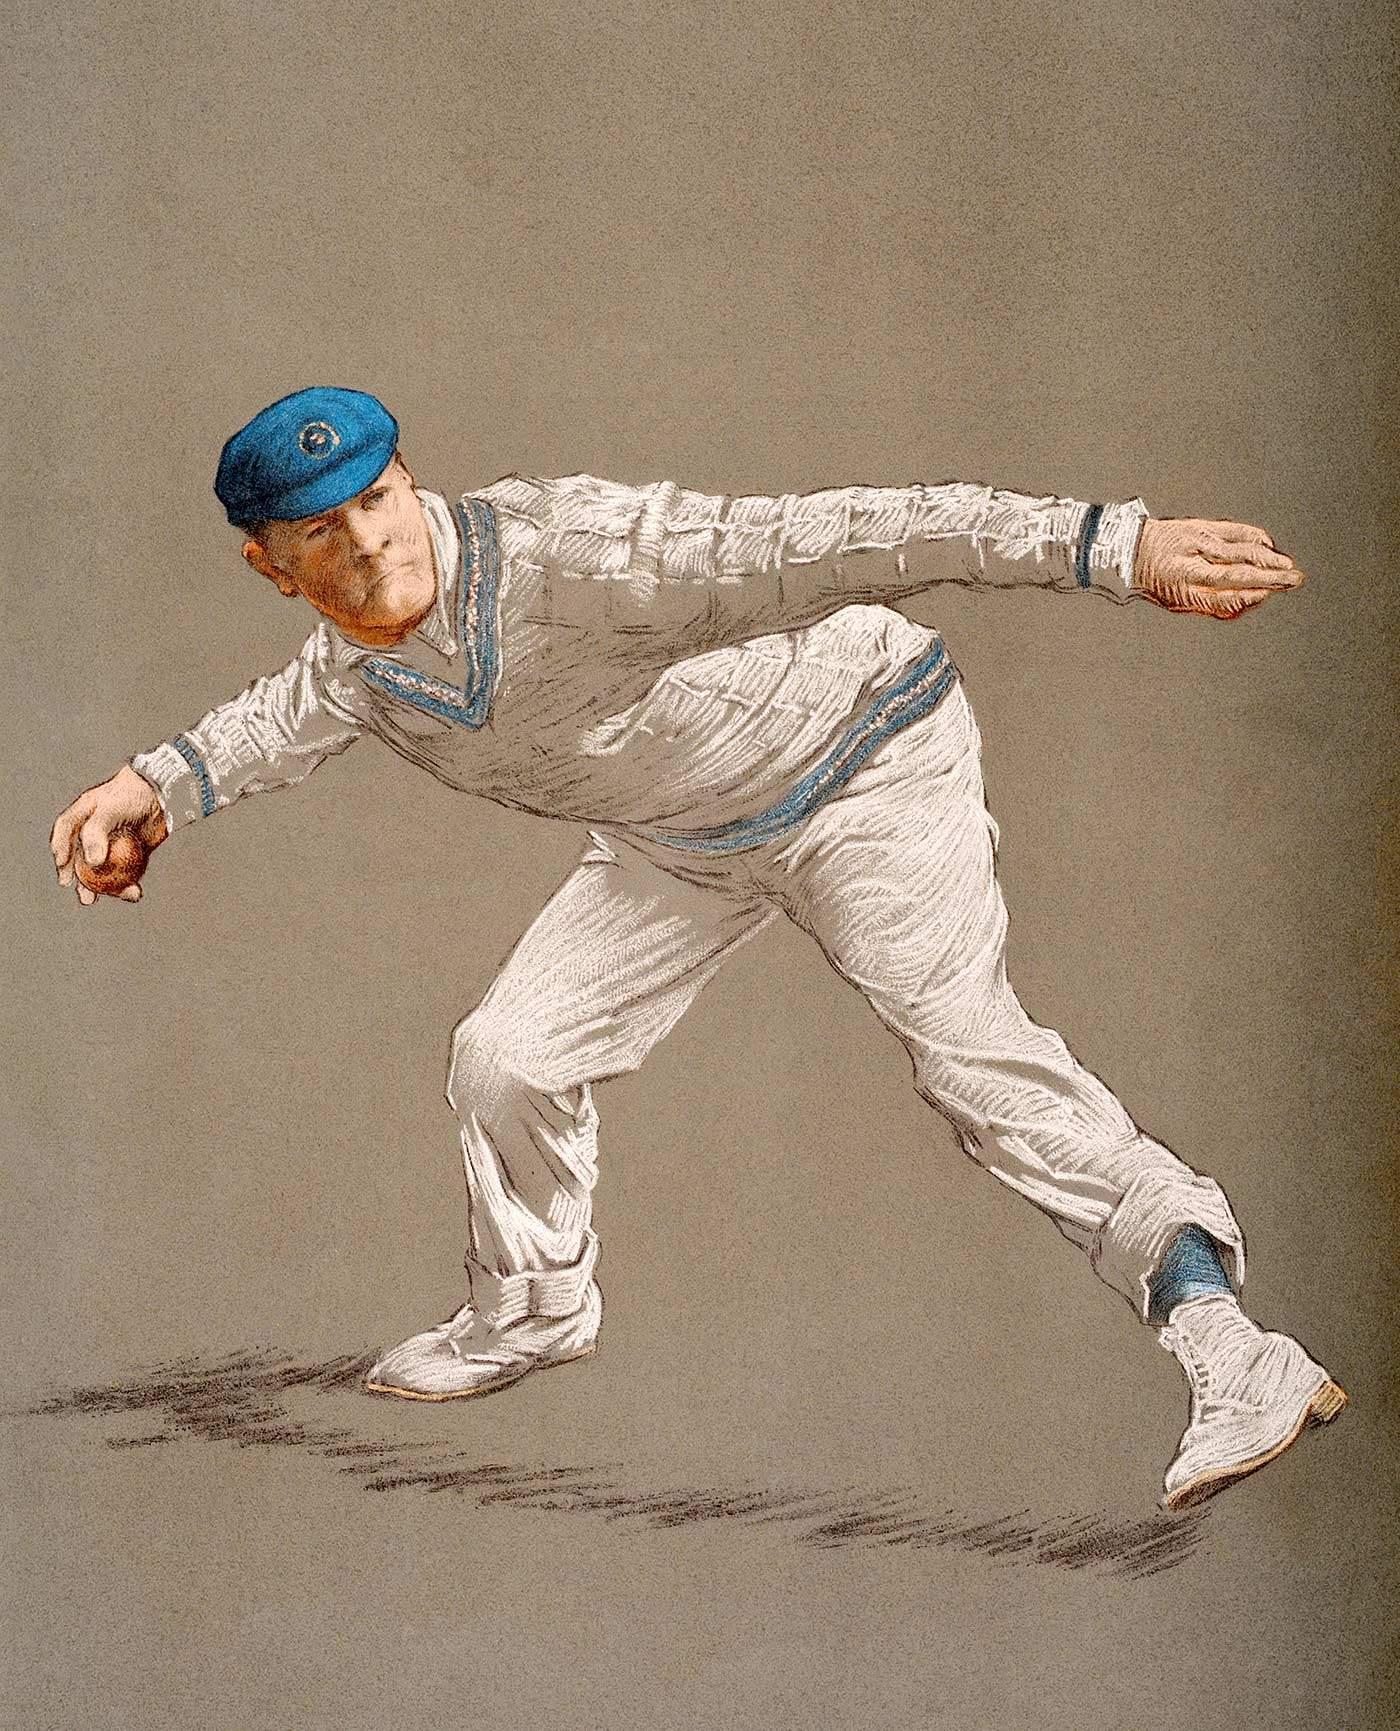 Gilbert Jessop was known as The Croucher for his stance at the crease (and possibly for his predatory fielding)